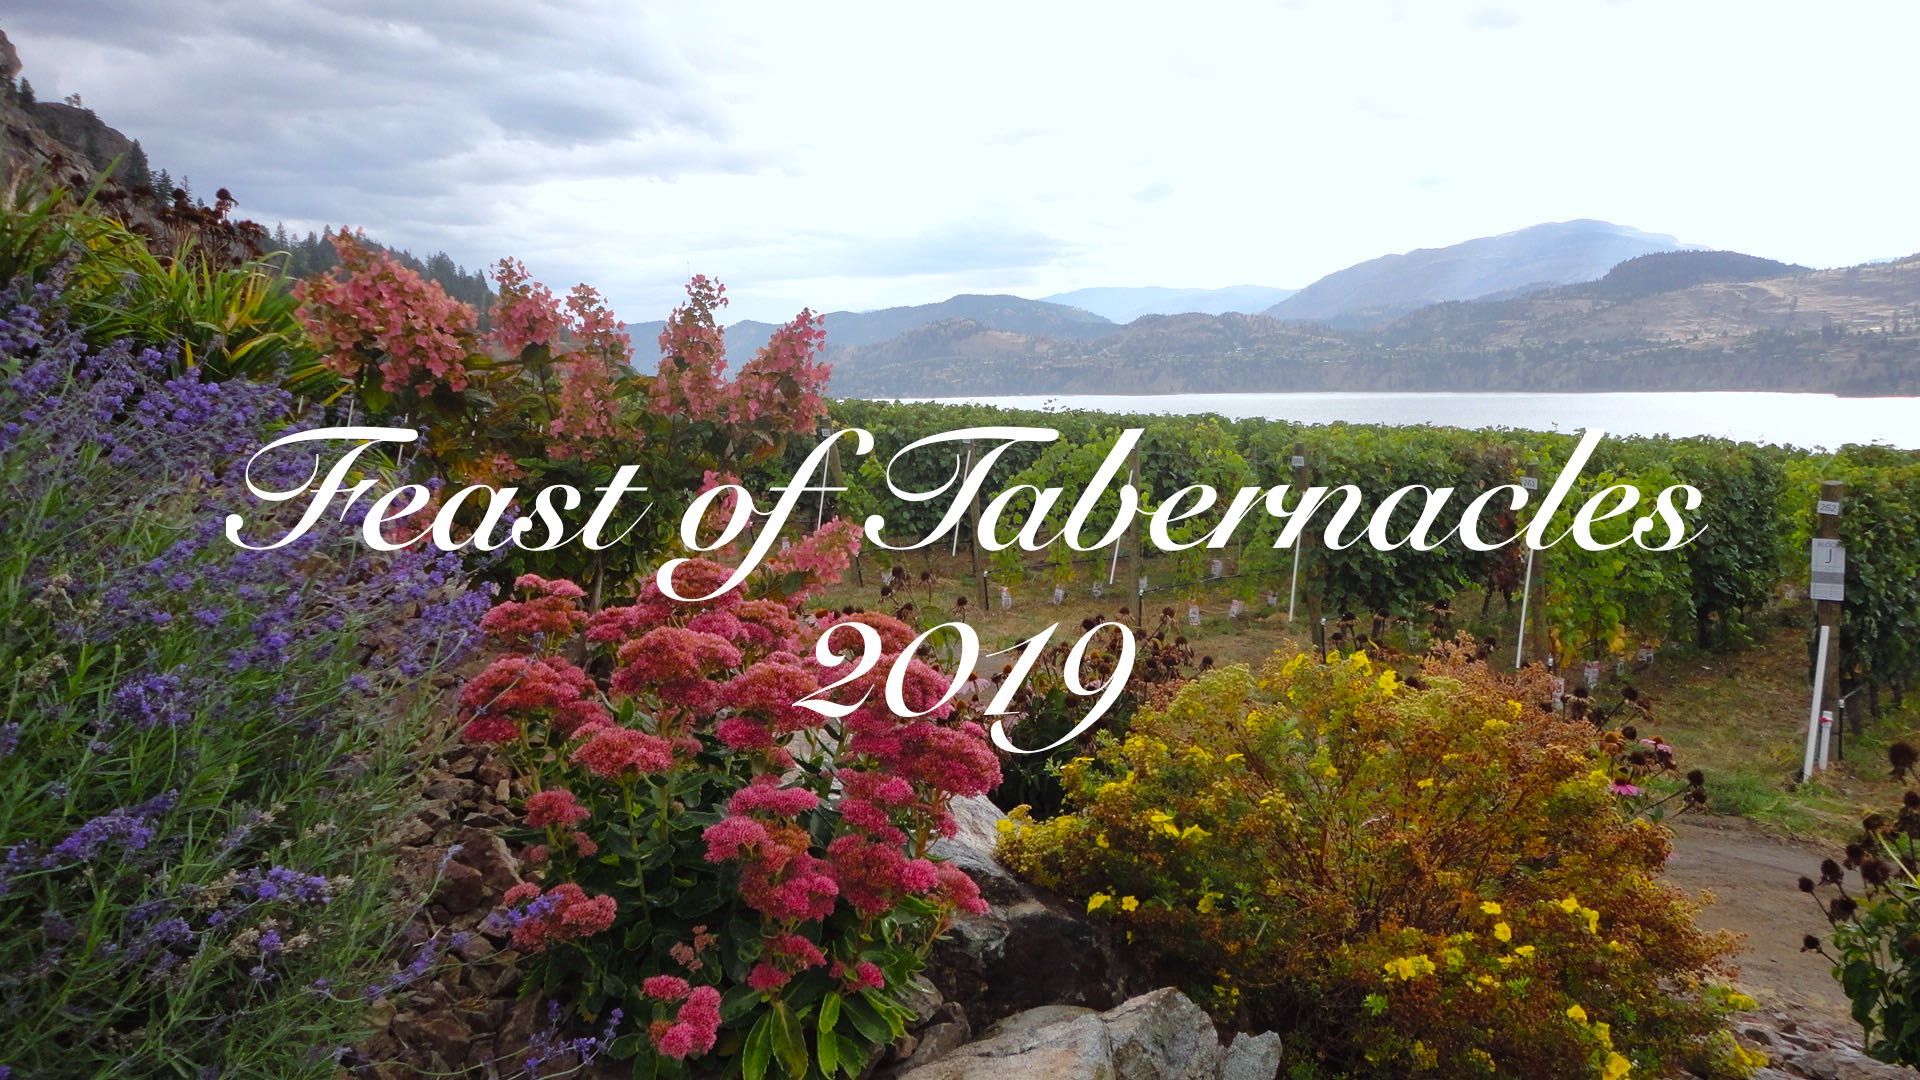 Feast of Tabernacles 2019